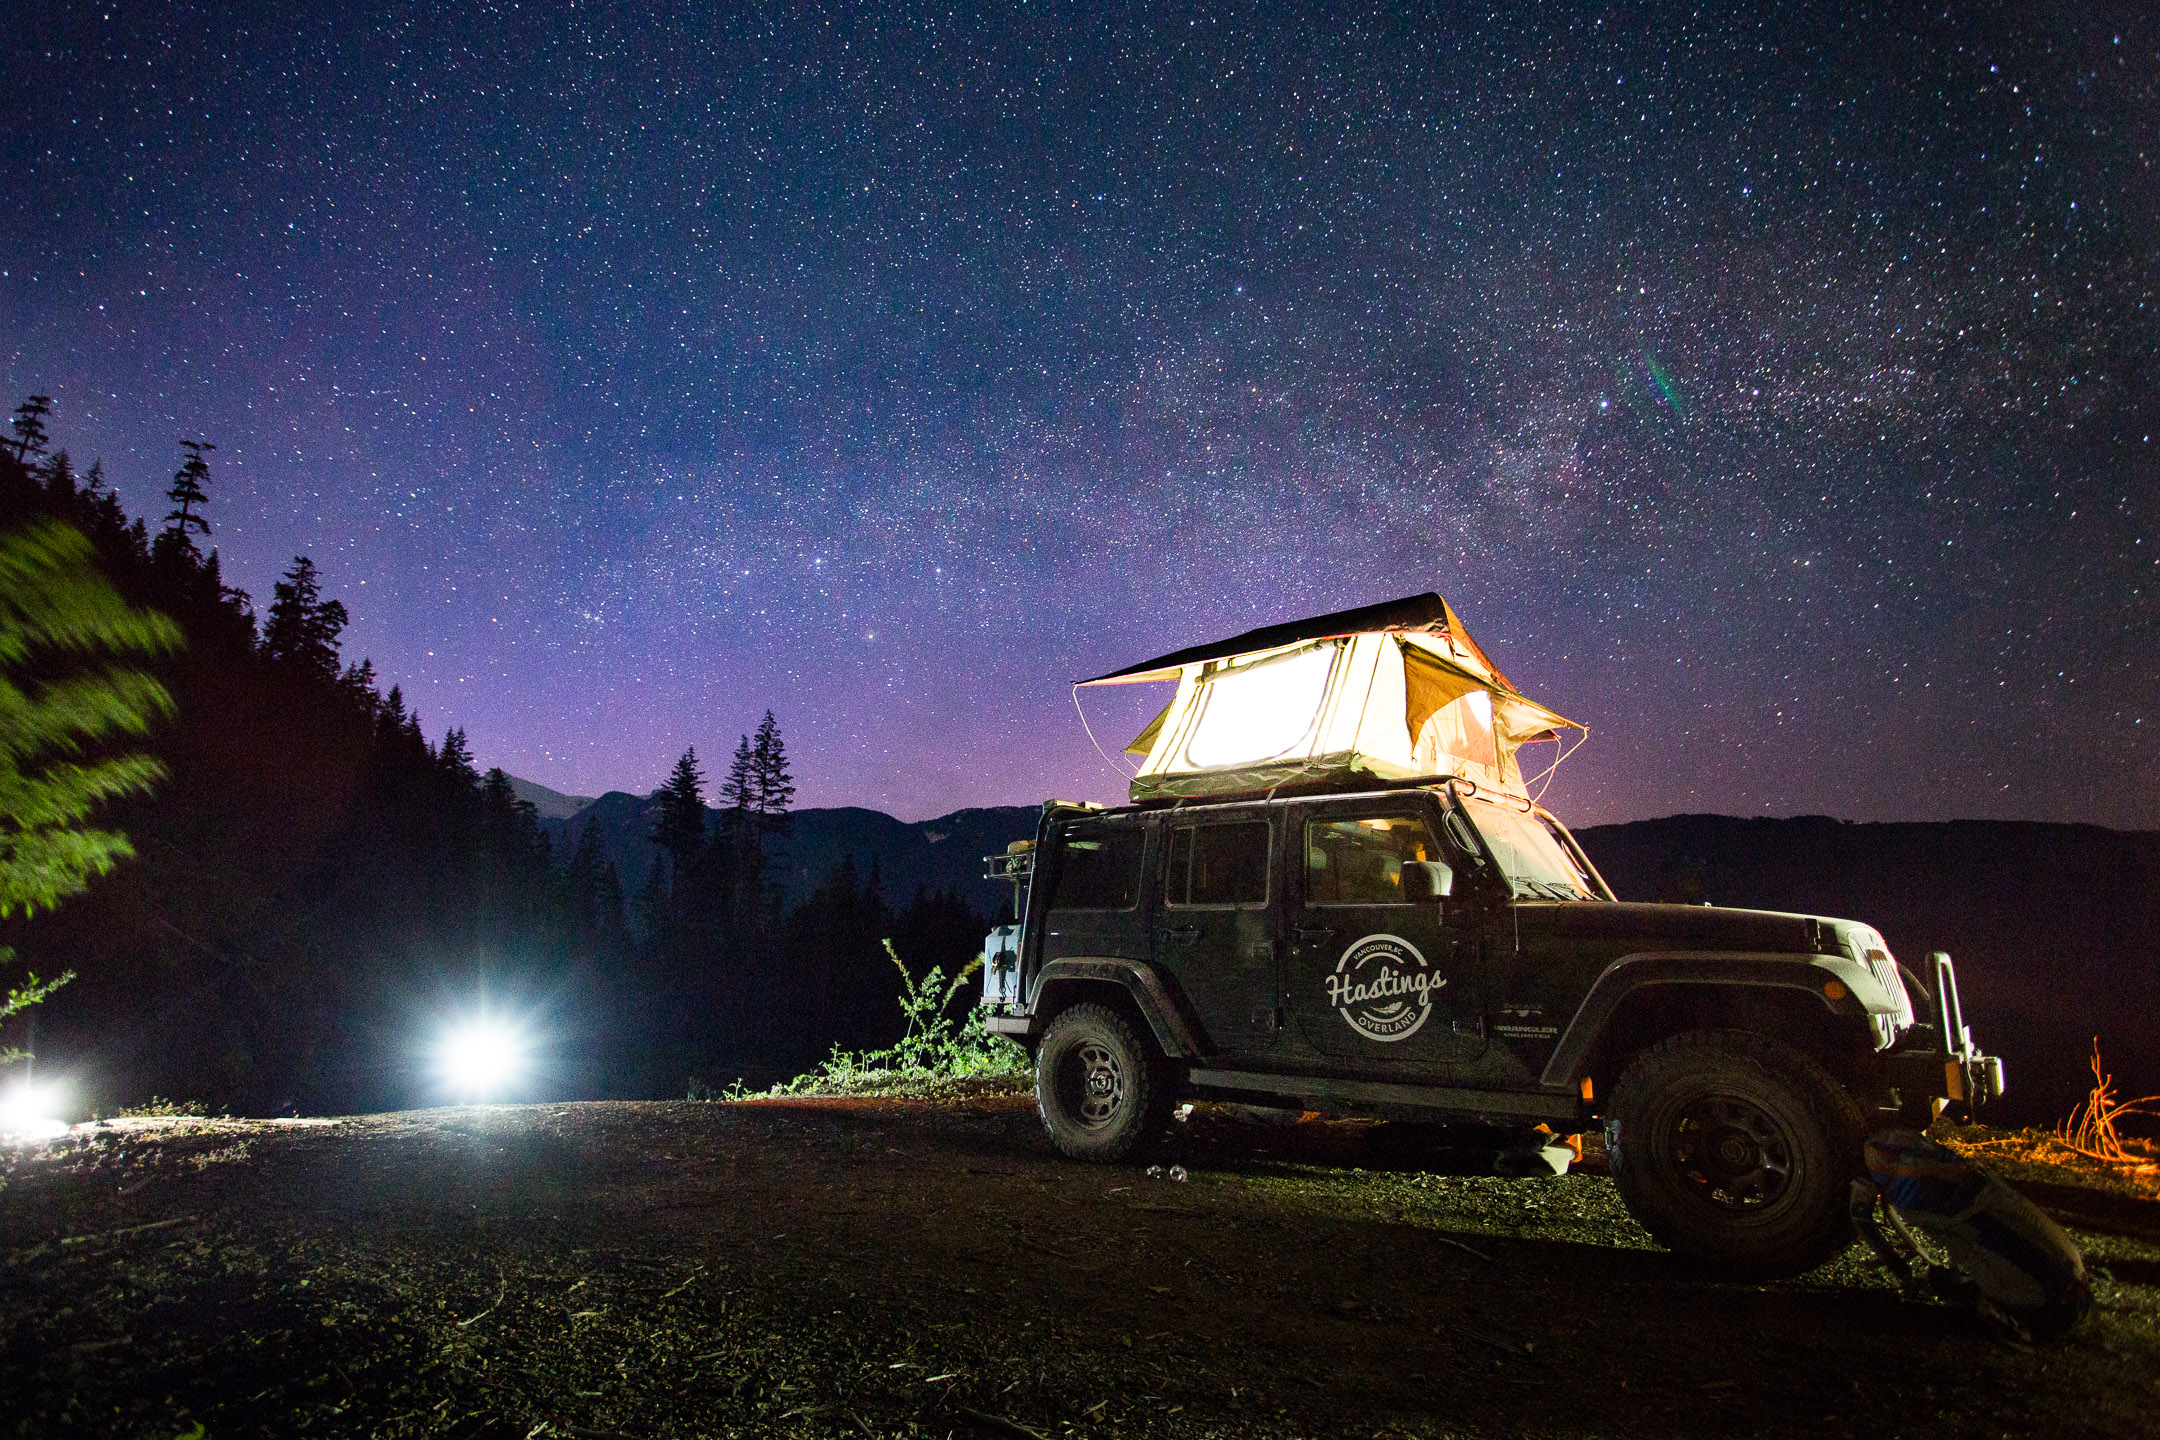 Shot for Hastings Overland